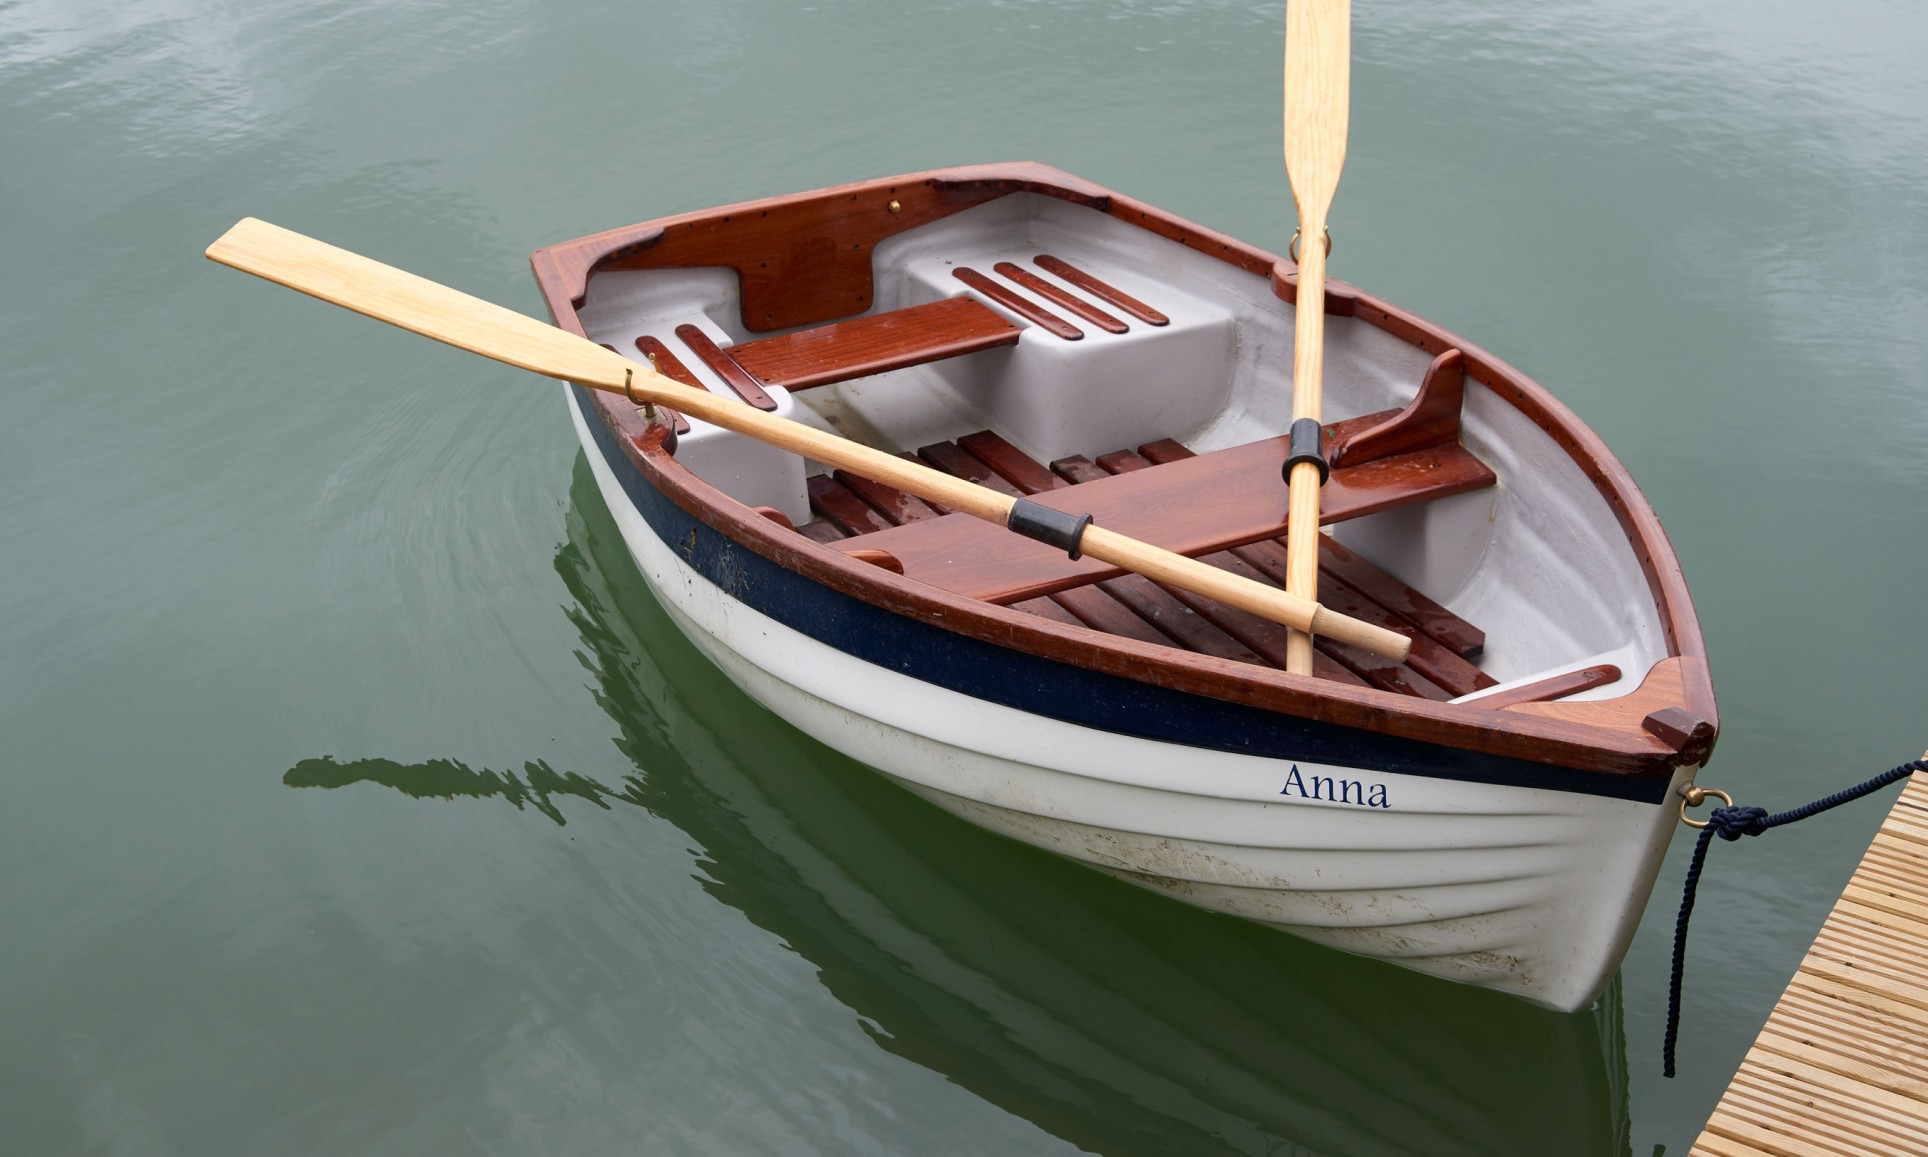 A rowing boat on a lake.